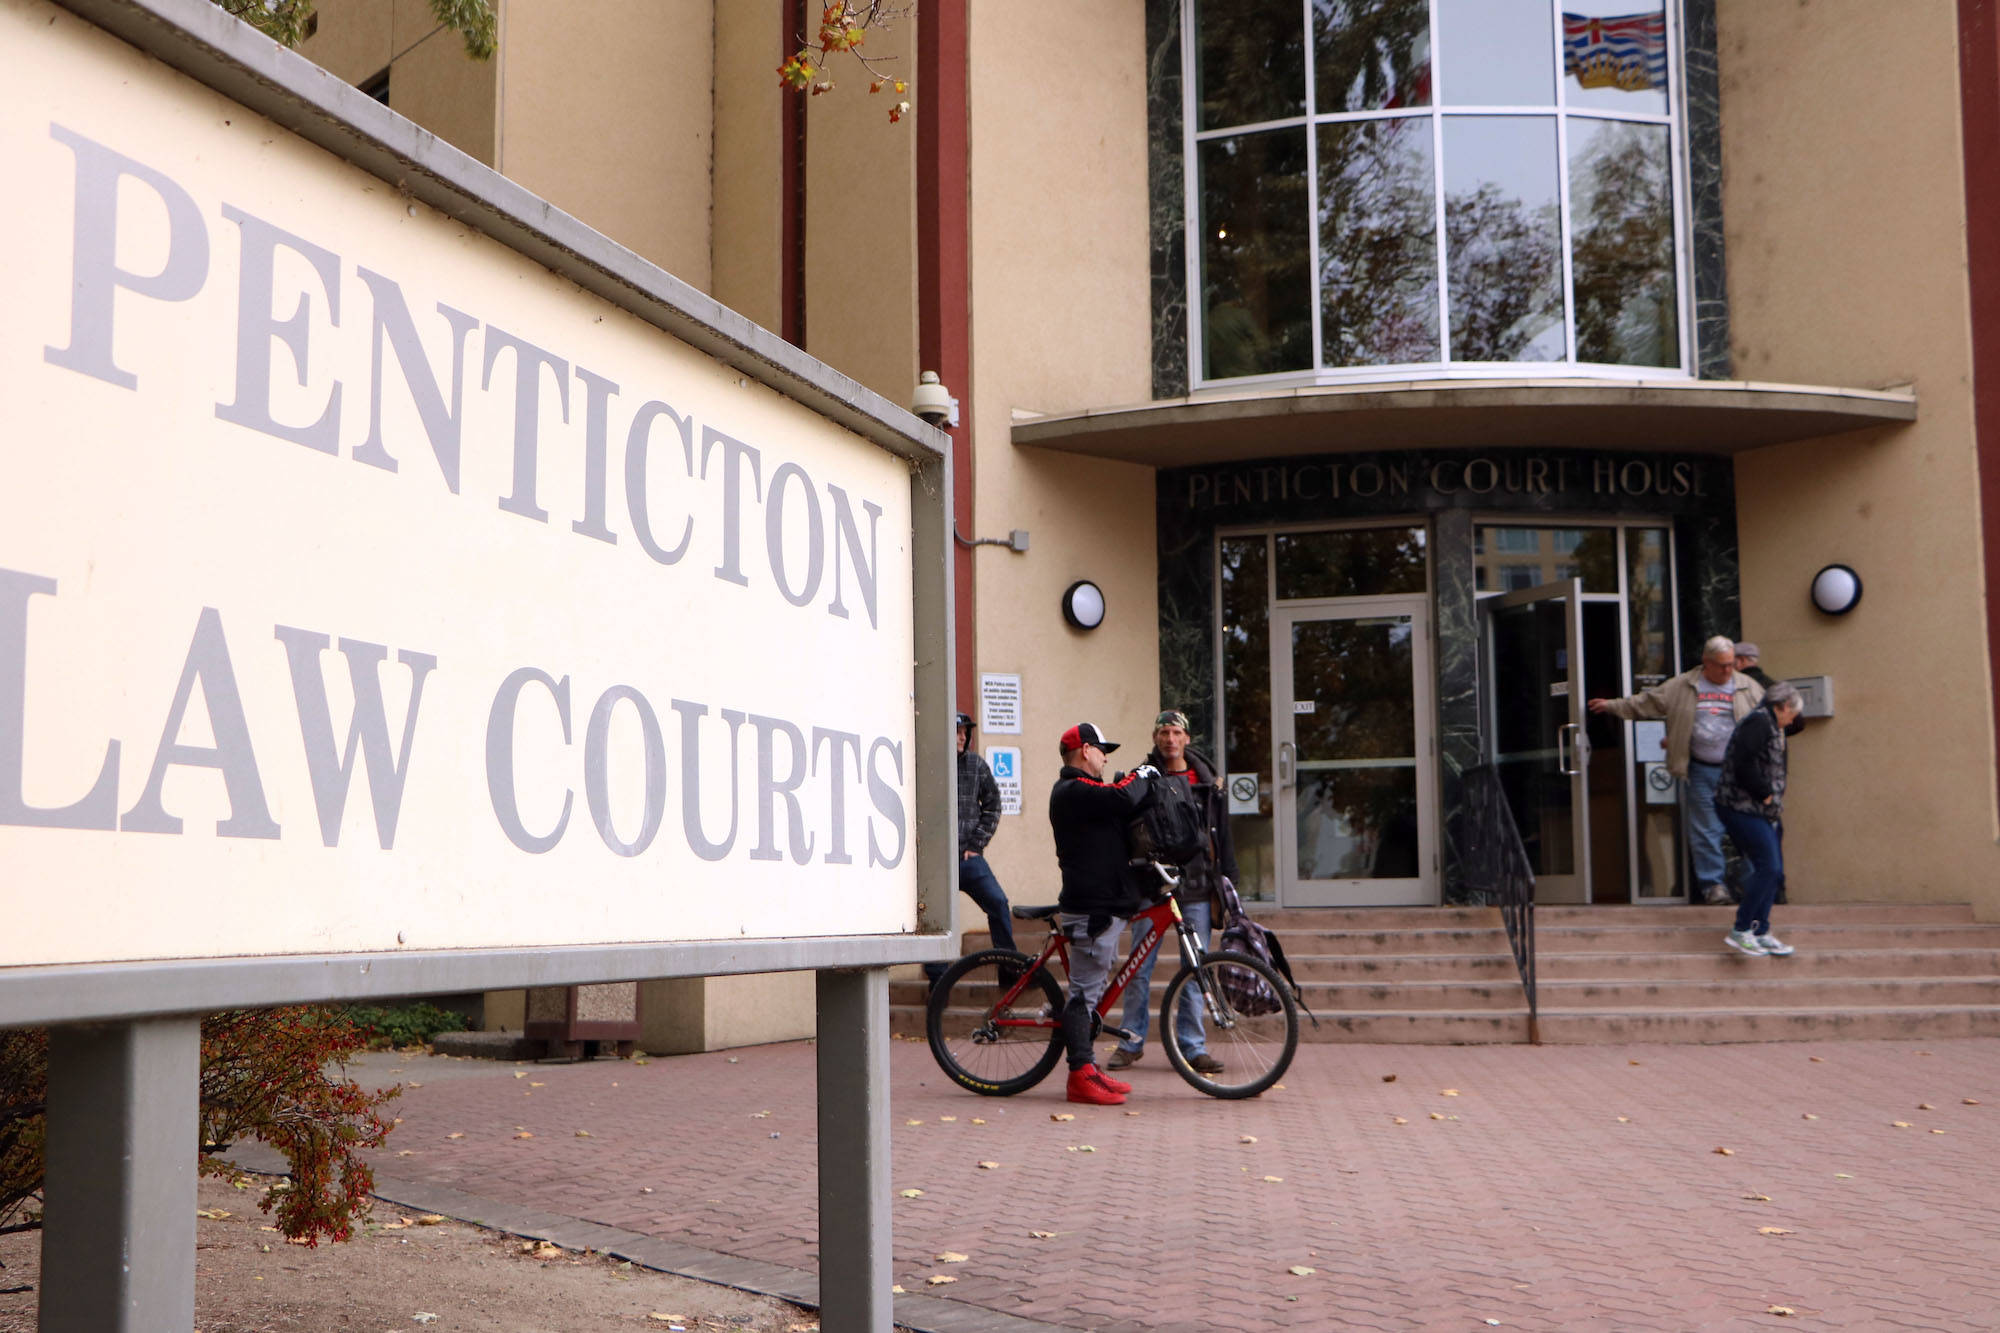 Former Penticton police officer receives conditional discharge